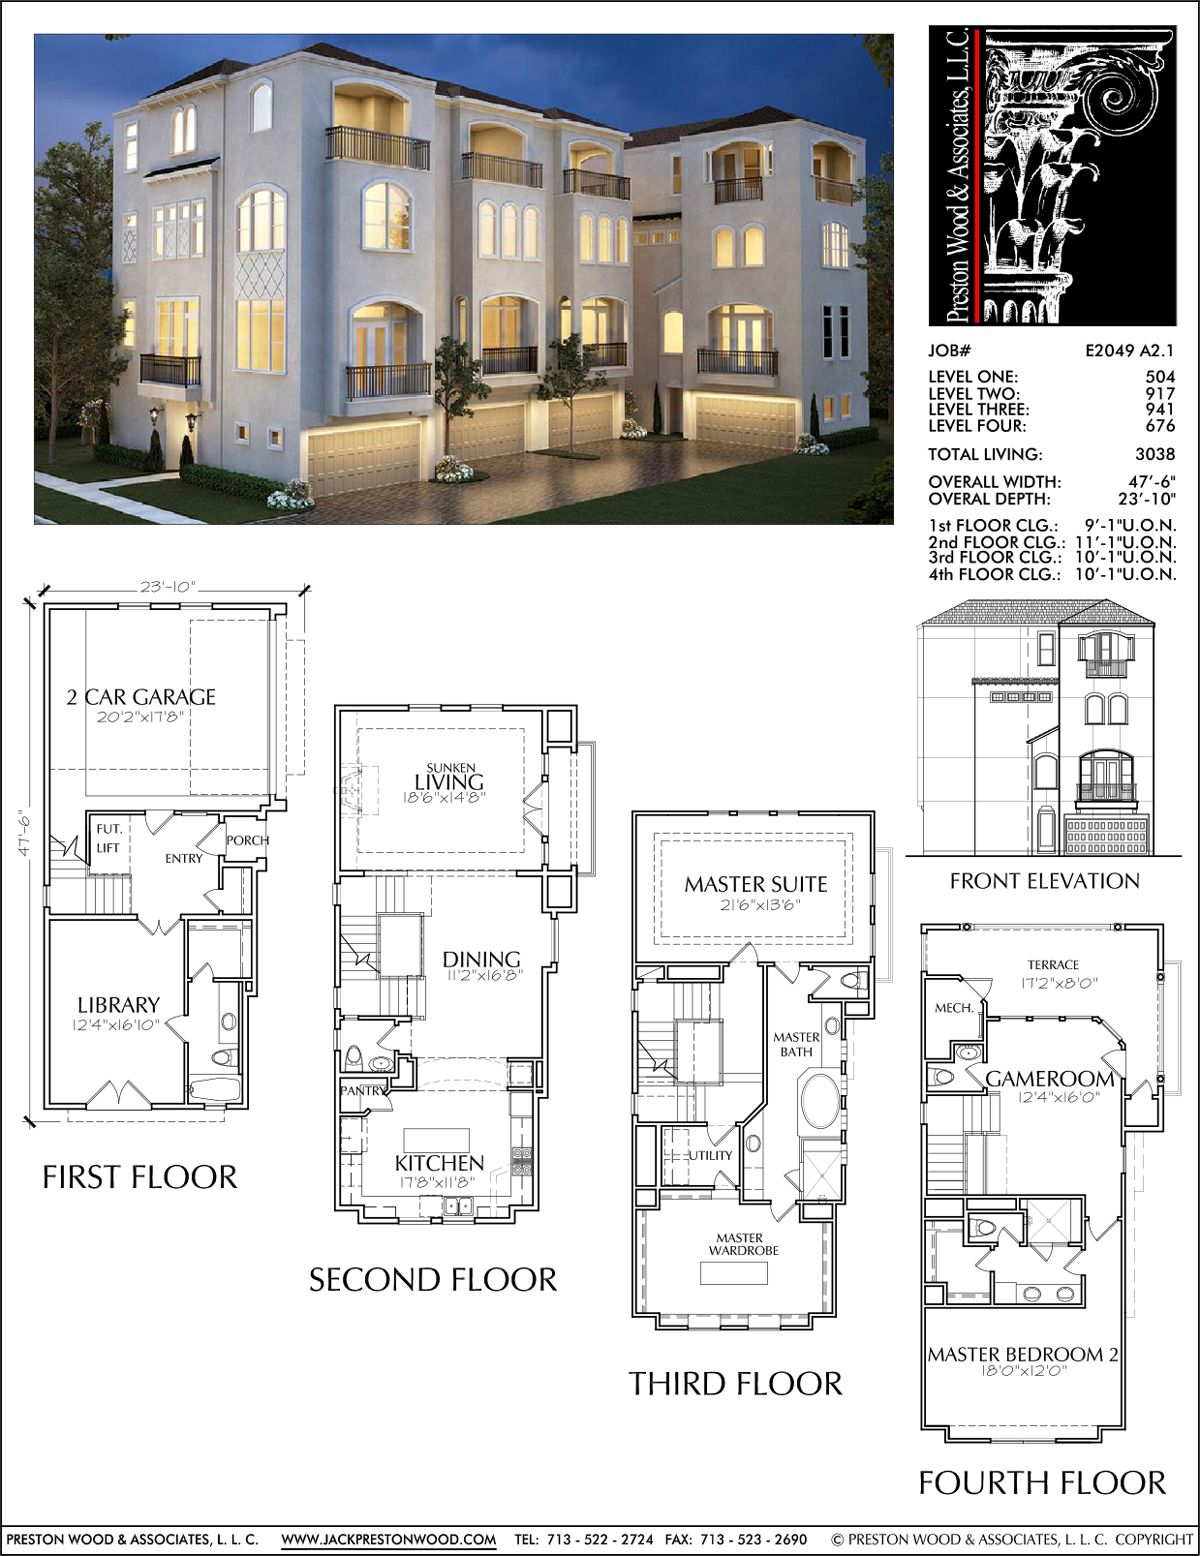 Four Story Townhouse Plan E2049 A2 1 Town House Floor Plan Mansion Floor Plan Town House Plans